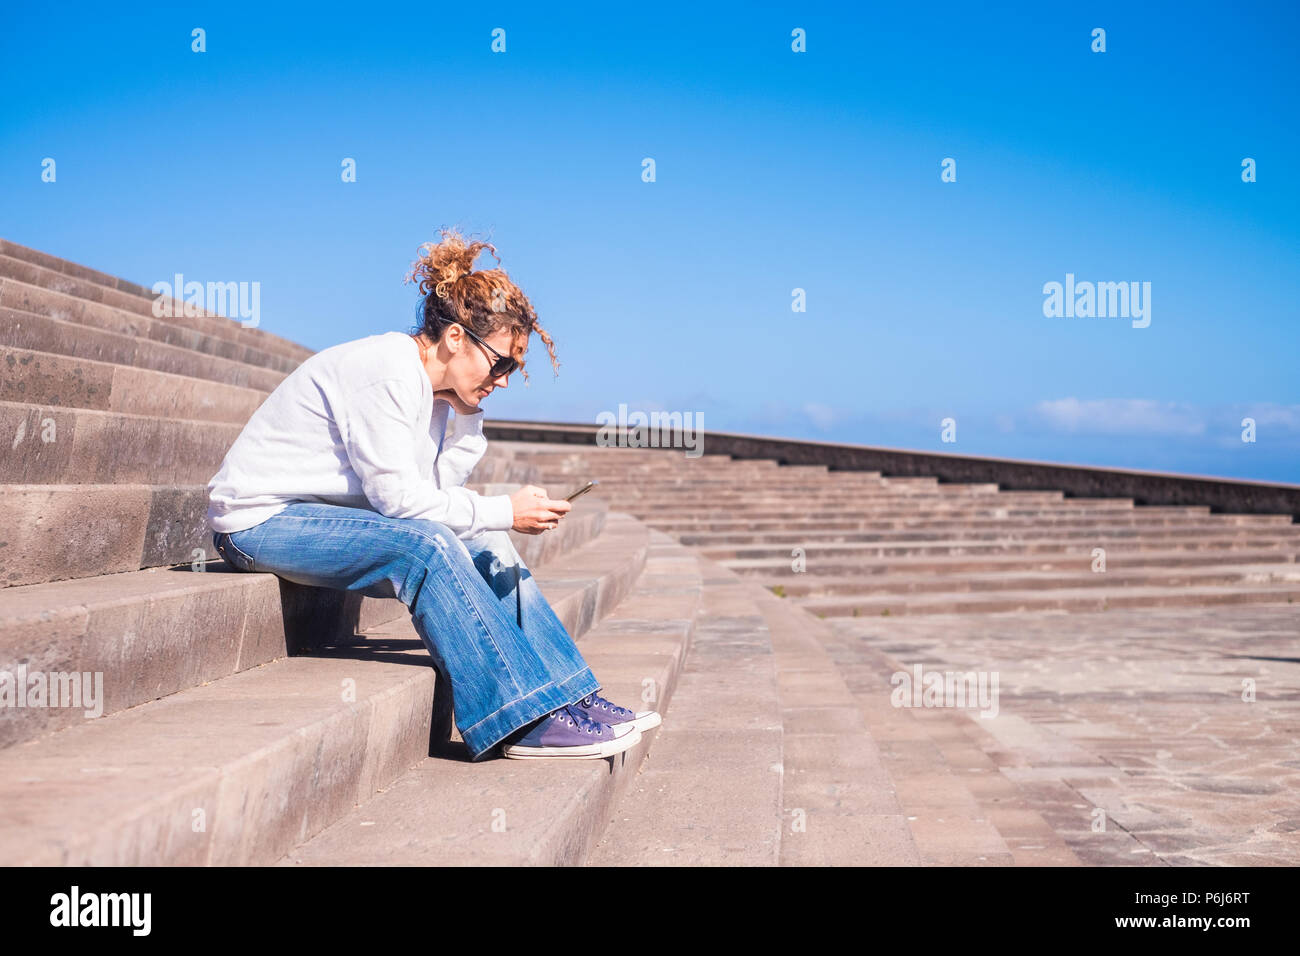 lonely middle age woman at work with a smartphone sitting on a long beautiful staris in urban contest. leisure with tehnology concept for modern lady  - Stock Image